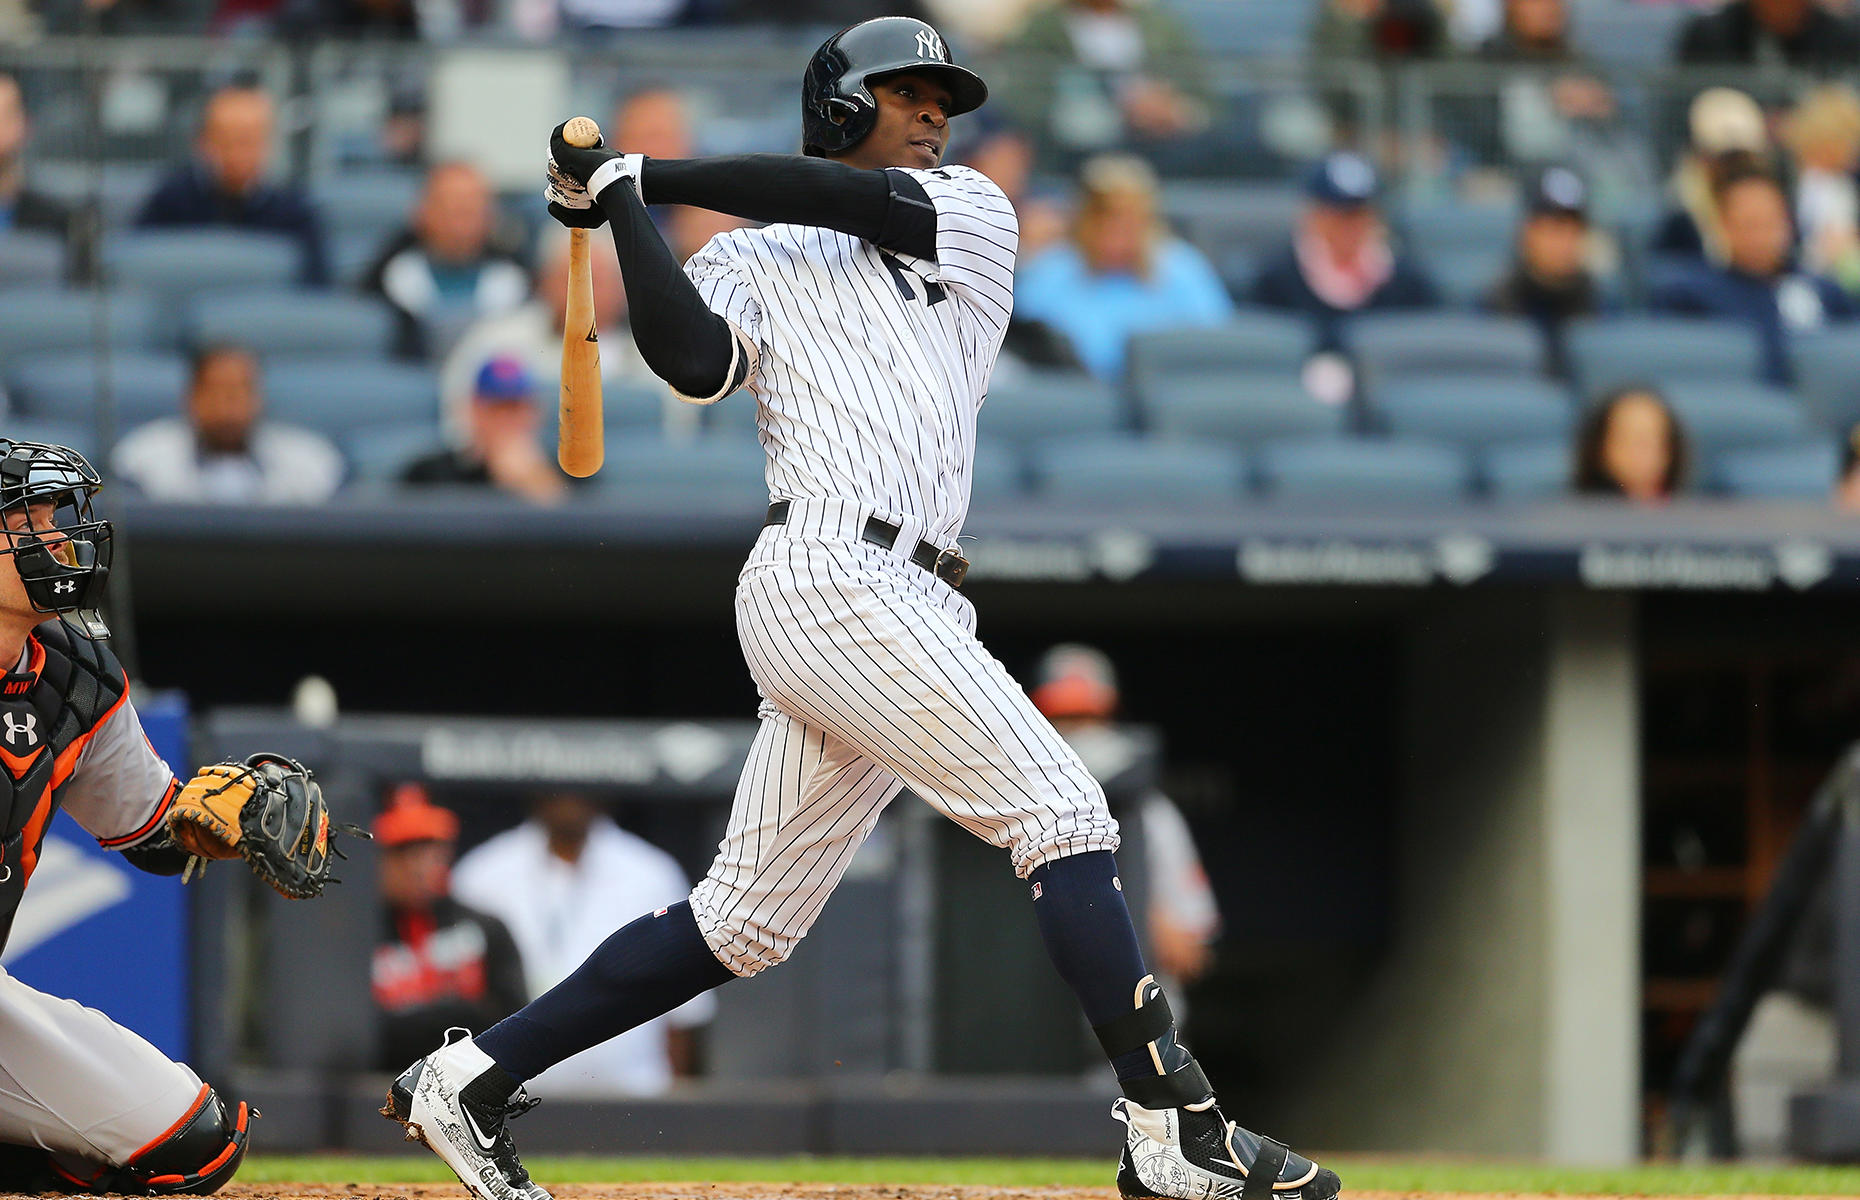 New York Yankees News Scores Schedule Stats Roster MLB MSN